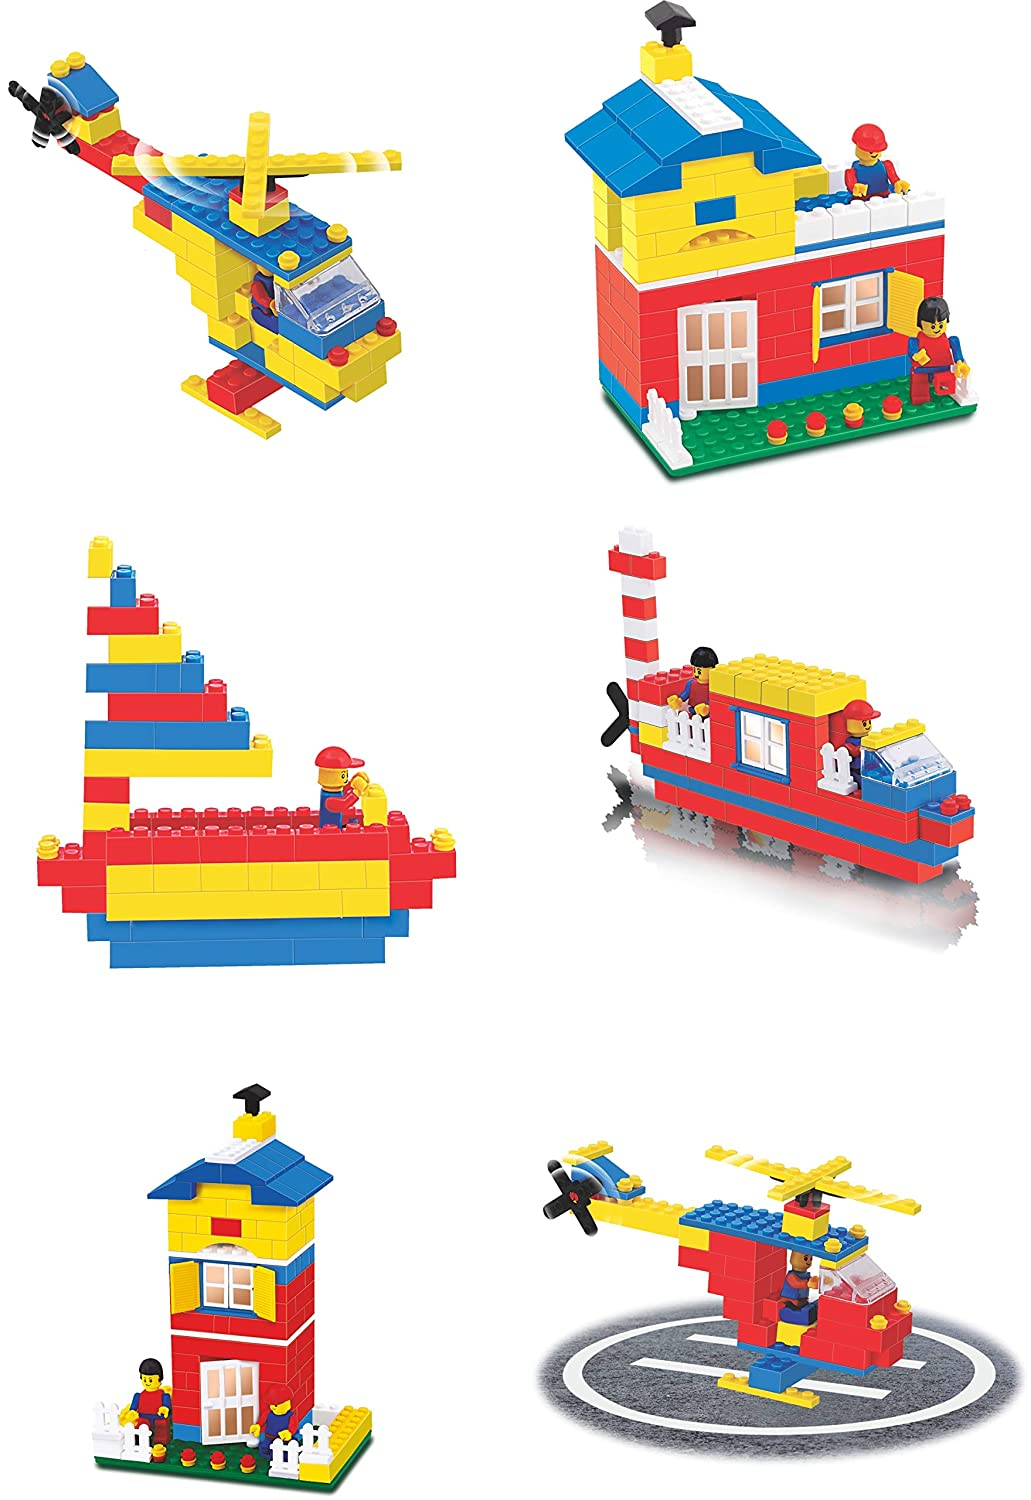 Toyztrend Expert Building Blocks for Kids